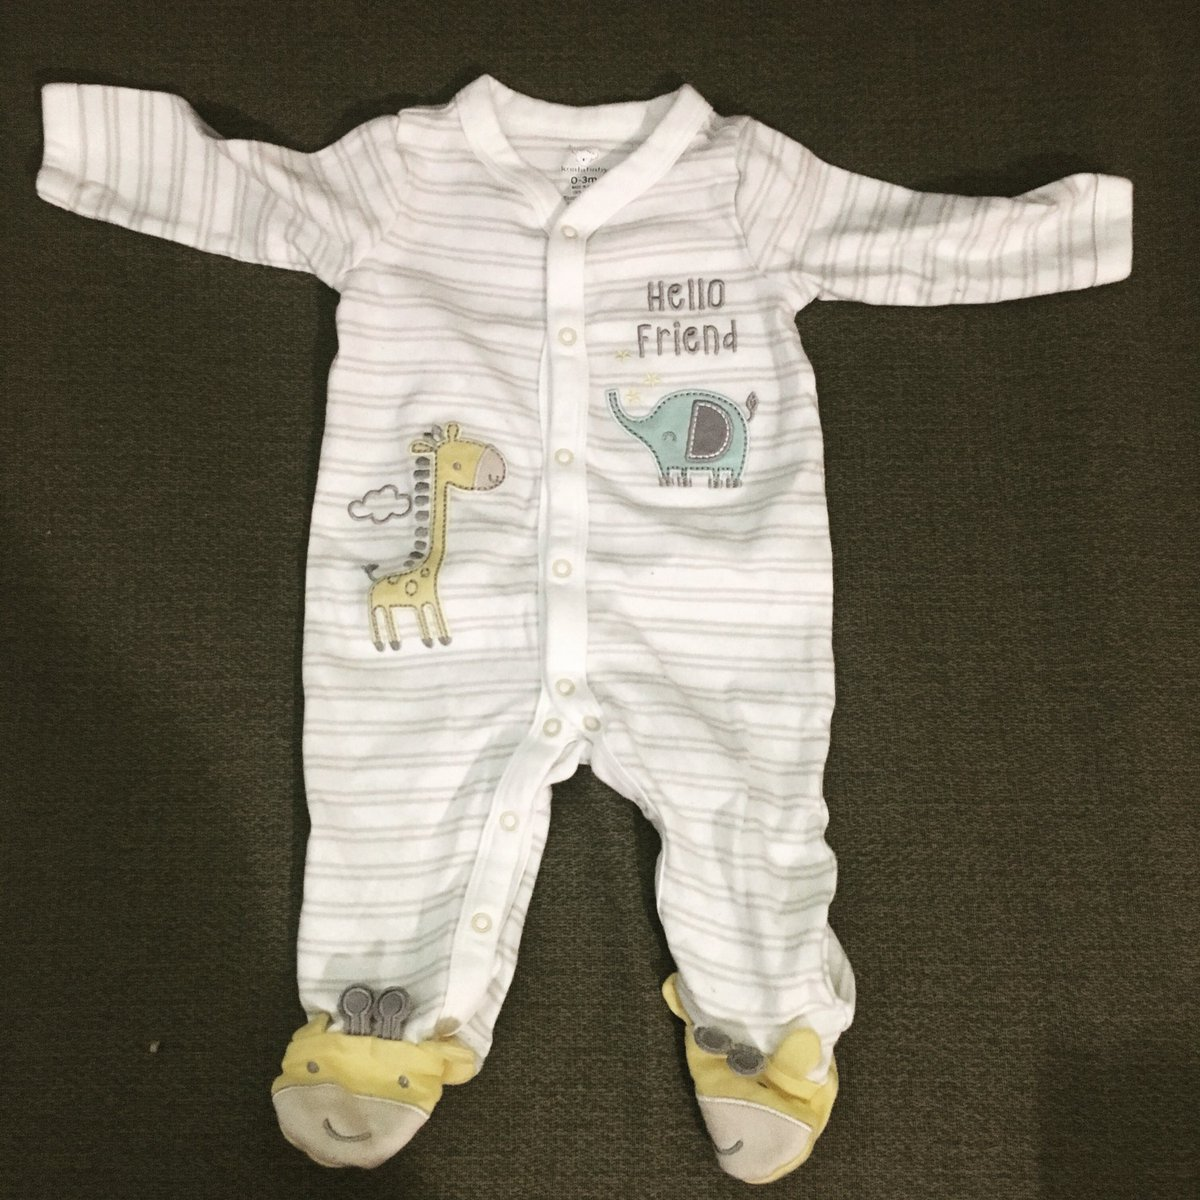 #BabyBox2 let's go home outfit! We outta here...